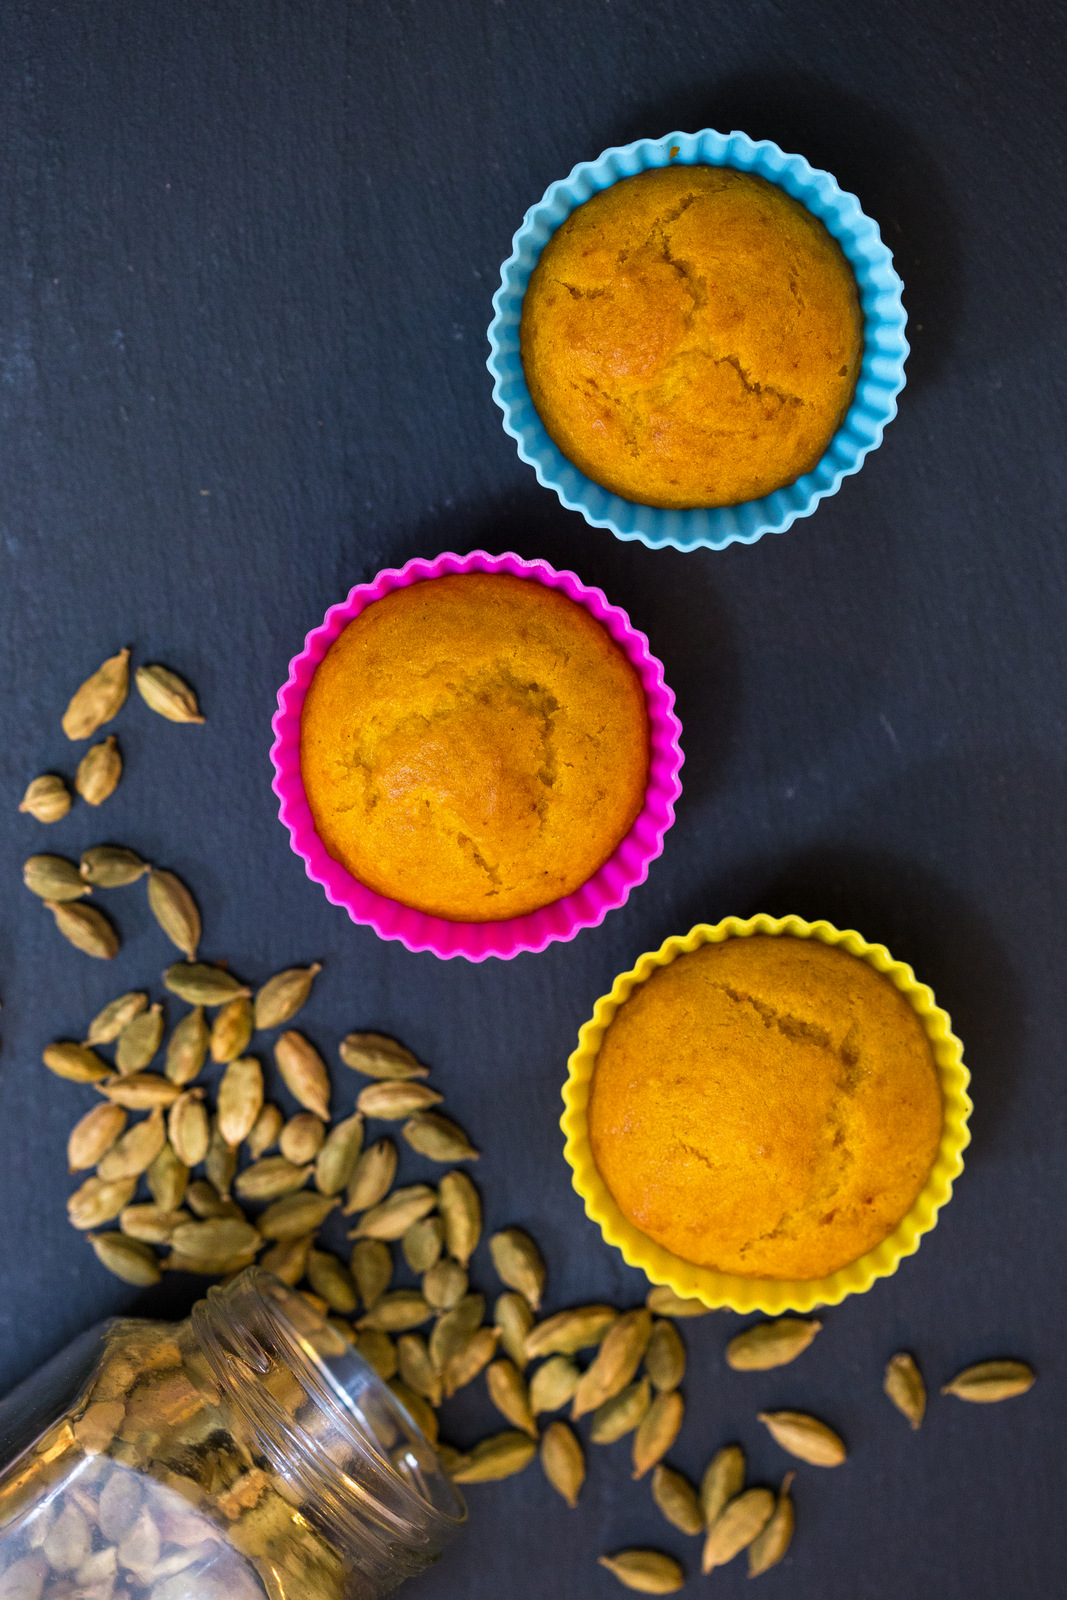 cupcakes, mini cooper, mango cupcakes, how to make cupcakes, easy cupcake recipe, cardamom cupcakes, bmw, food photography, food blogger, indian bloggers, eggless cupcakes, butterless cupcakes, indian cupcakes, driving, indianrecipes, baking, foodtalkindia